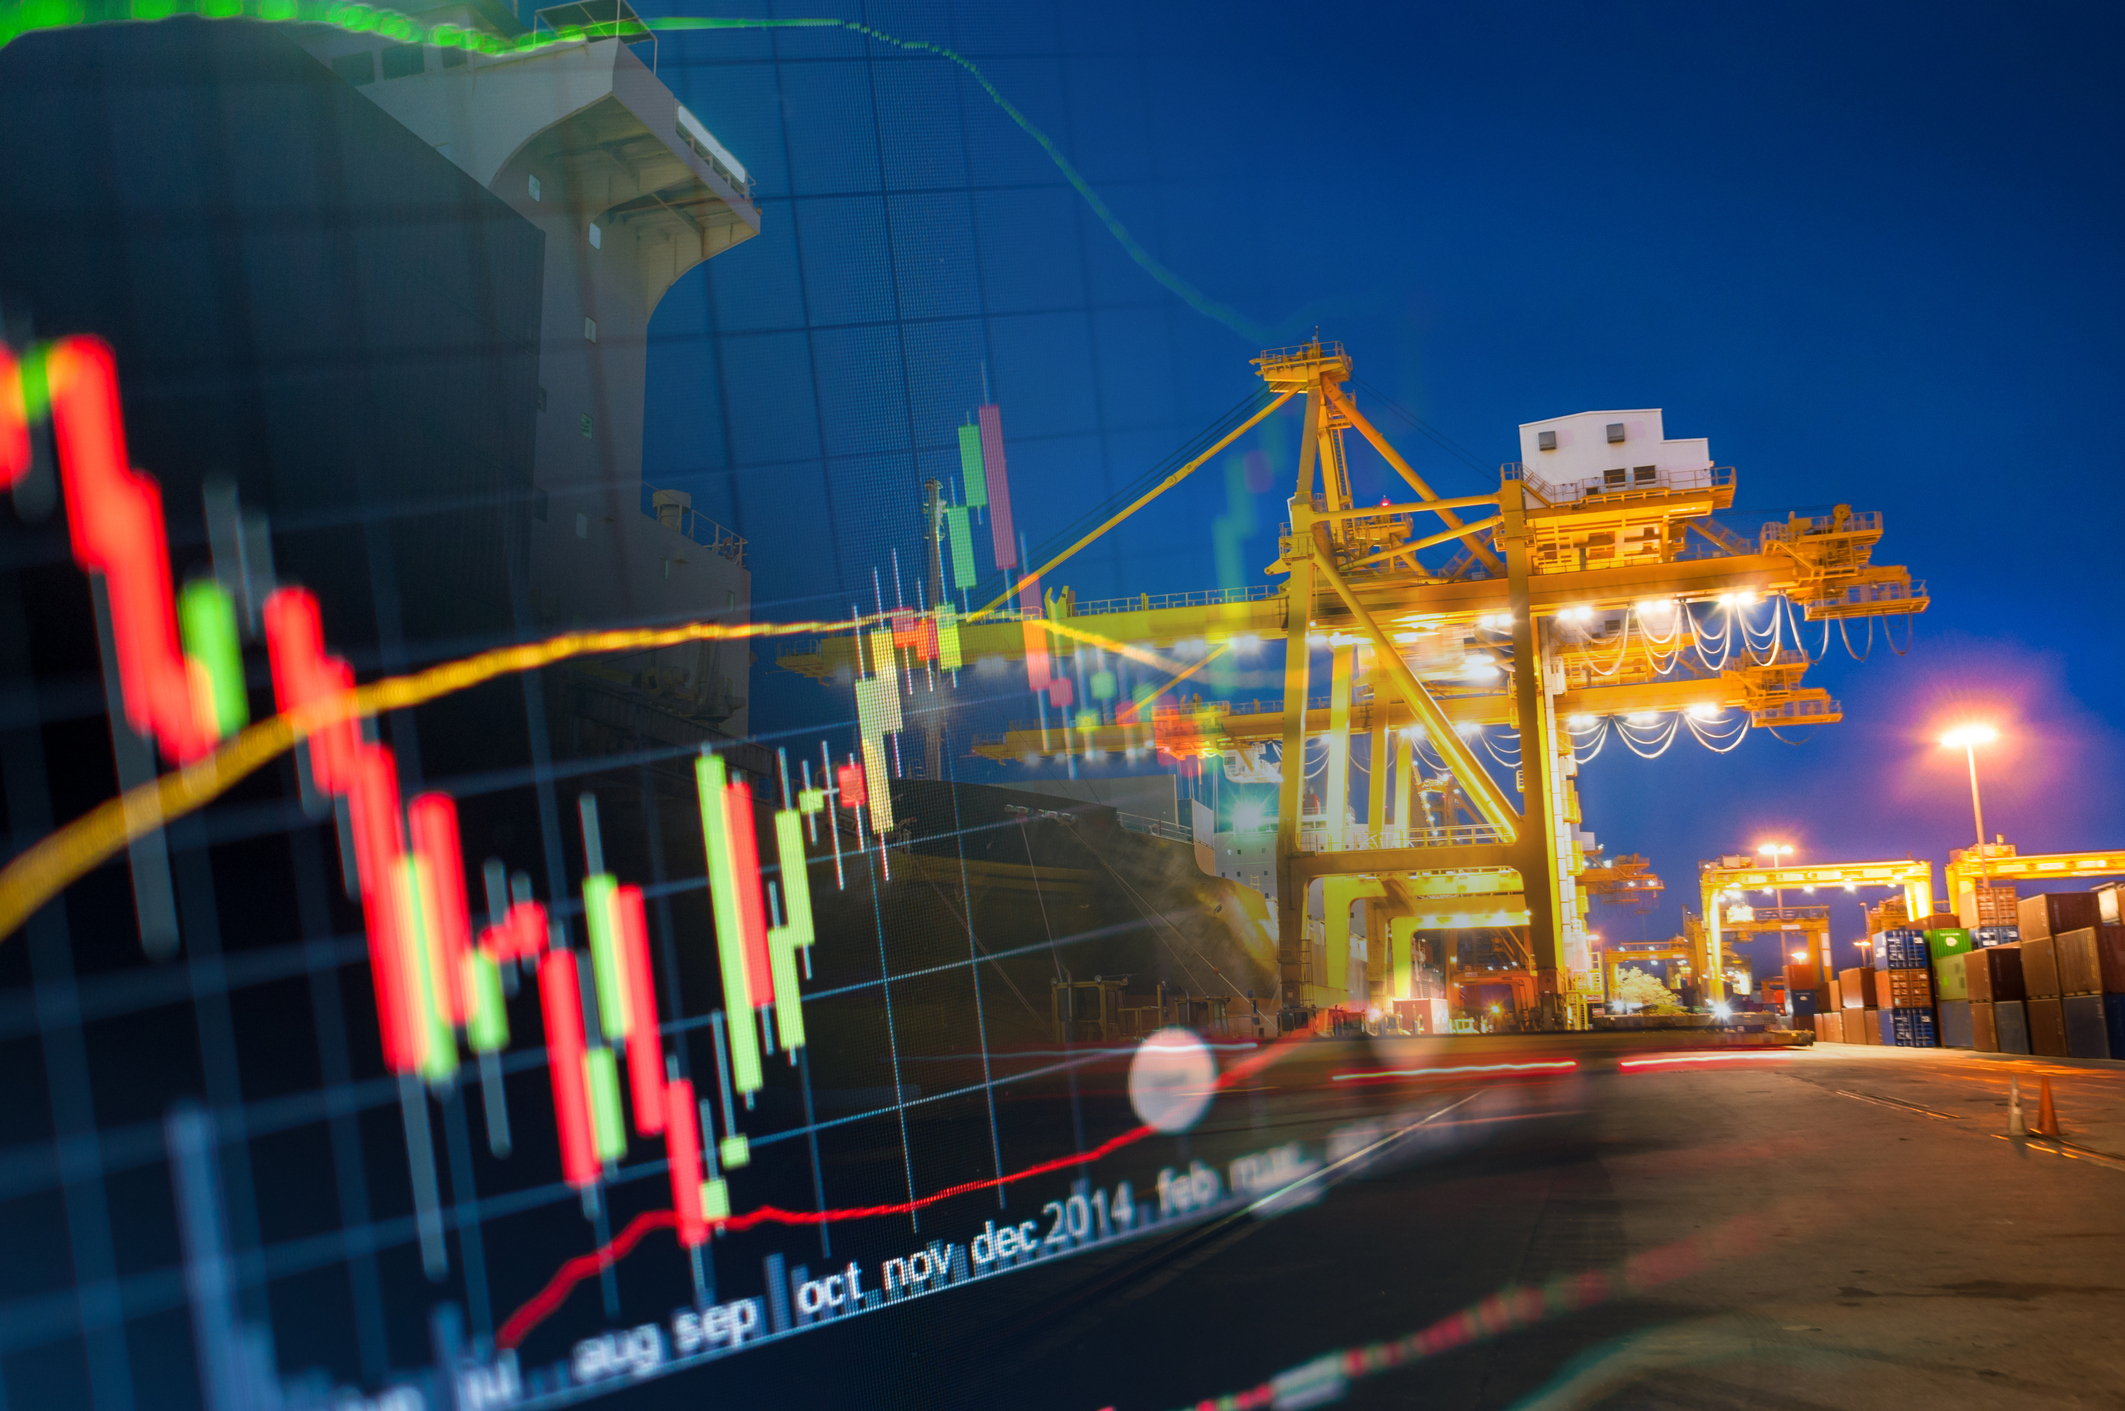 supply chain visibility challenges